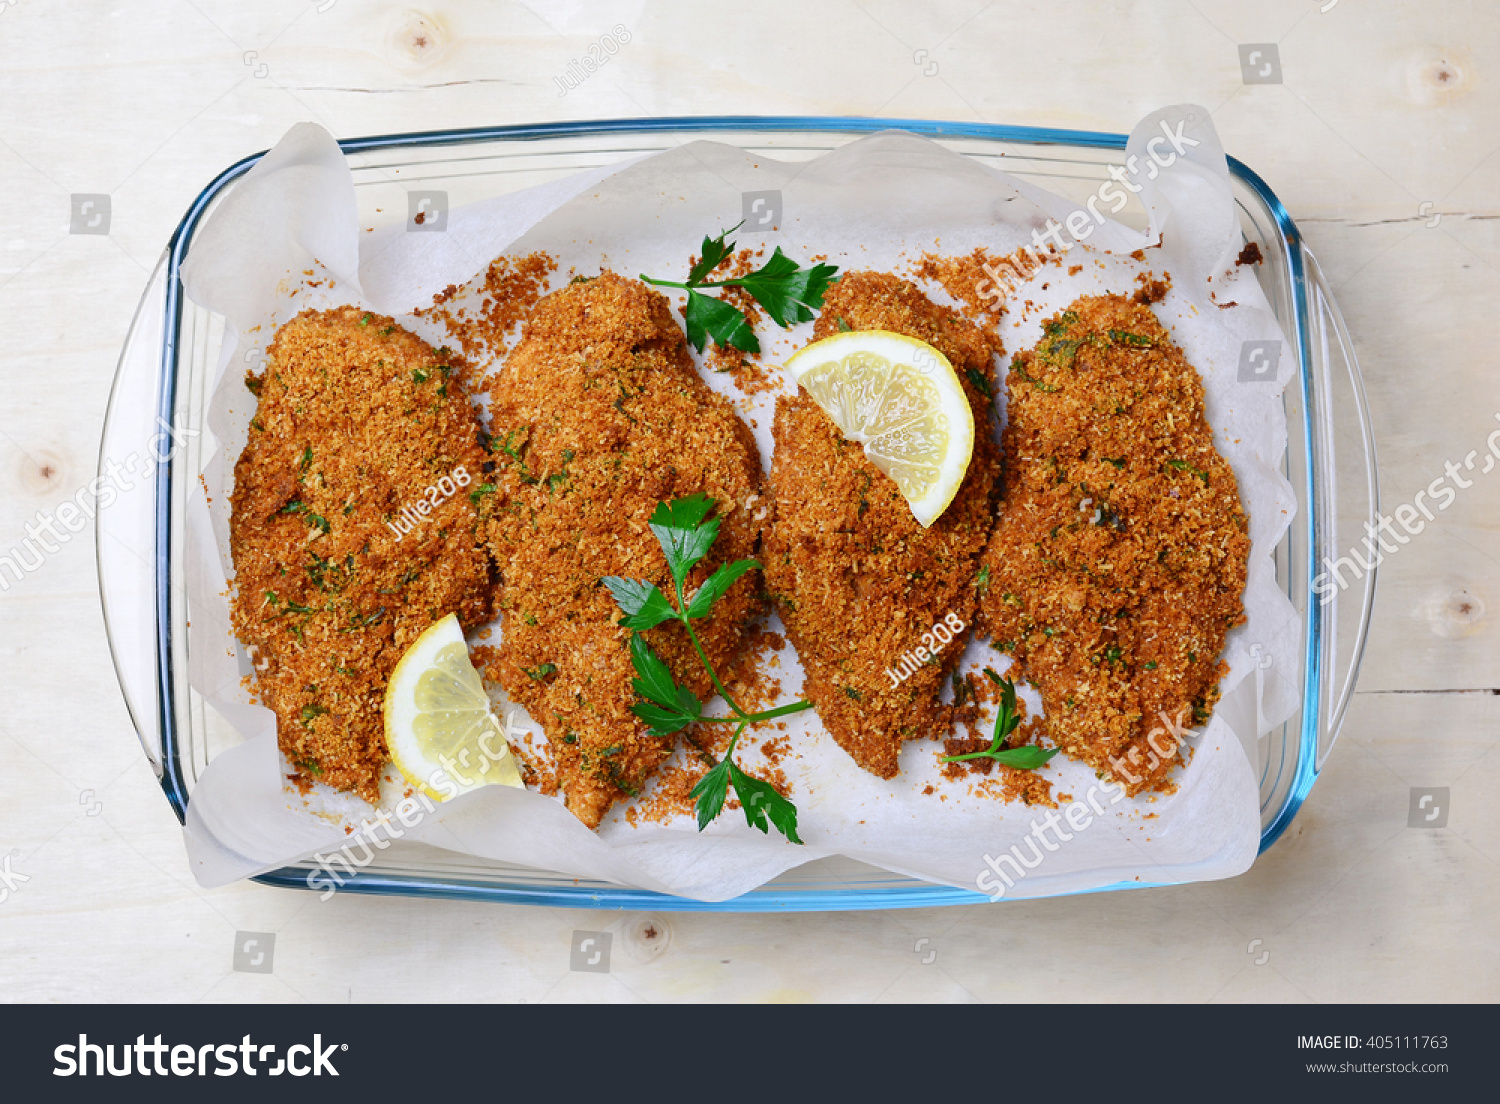 Baked In Bread Crumbs Chicken Breast Stock Photo 405111763 ...